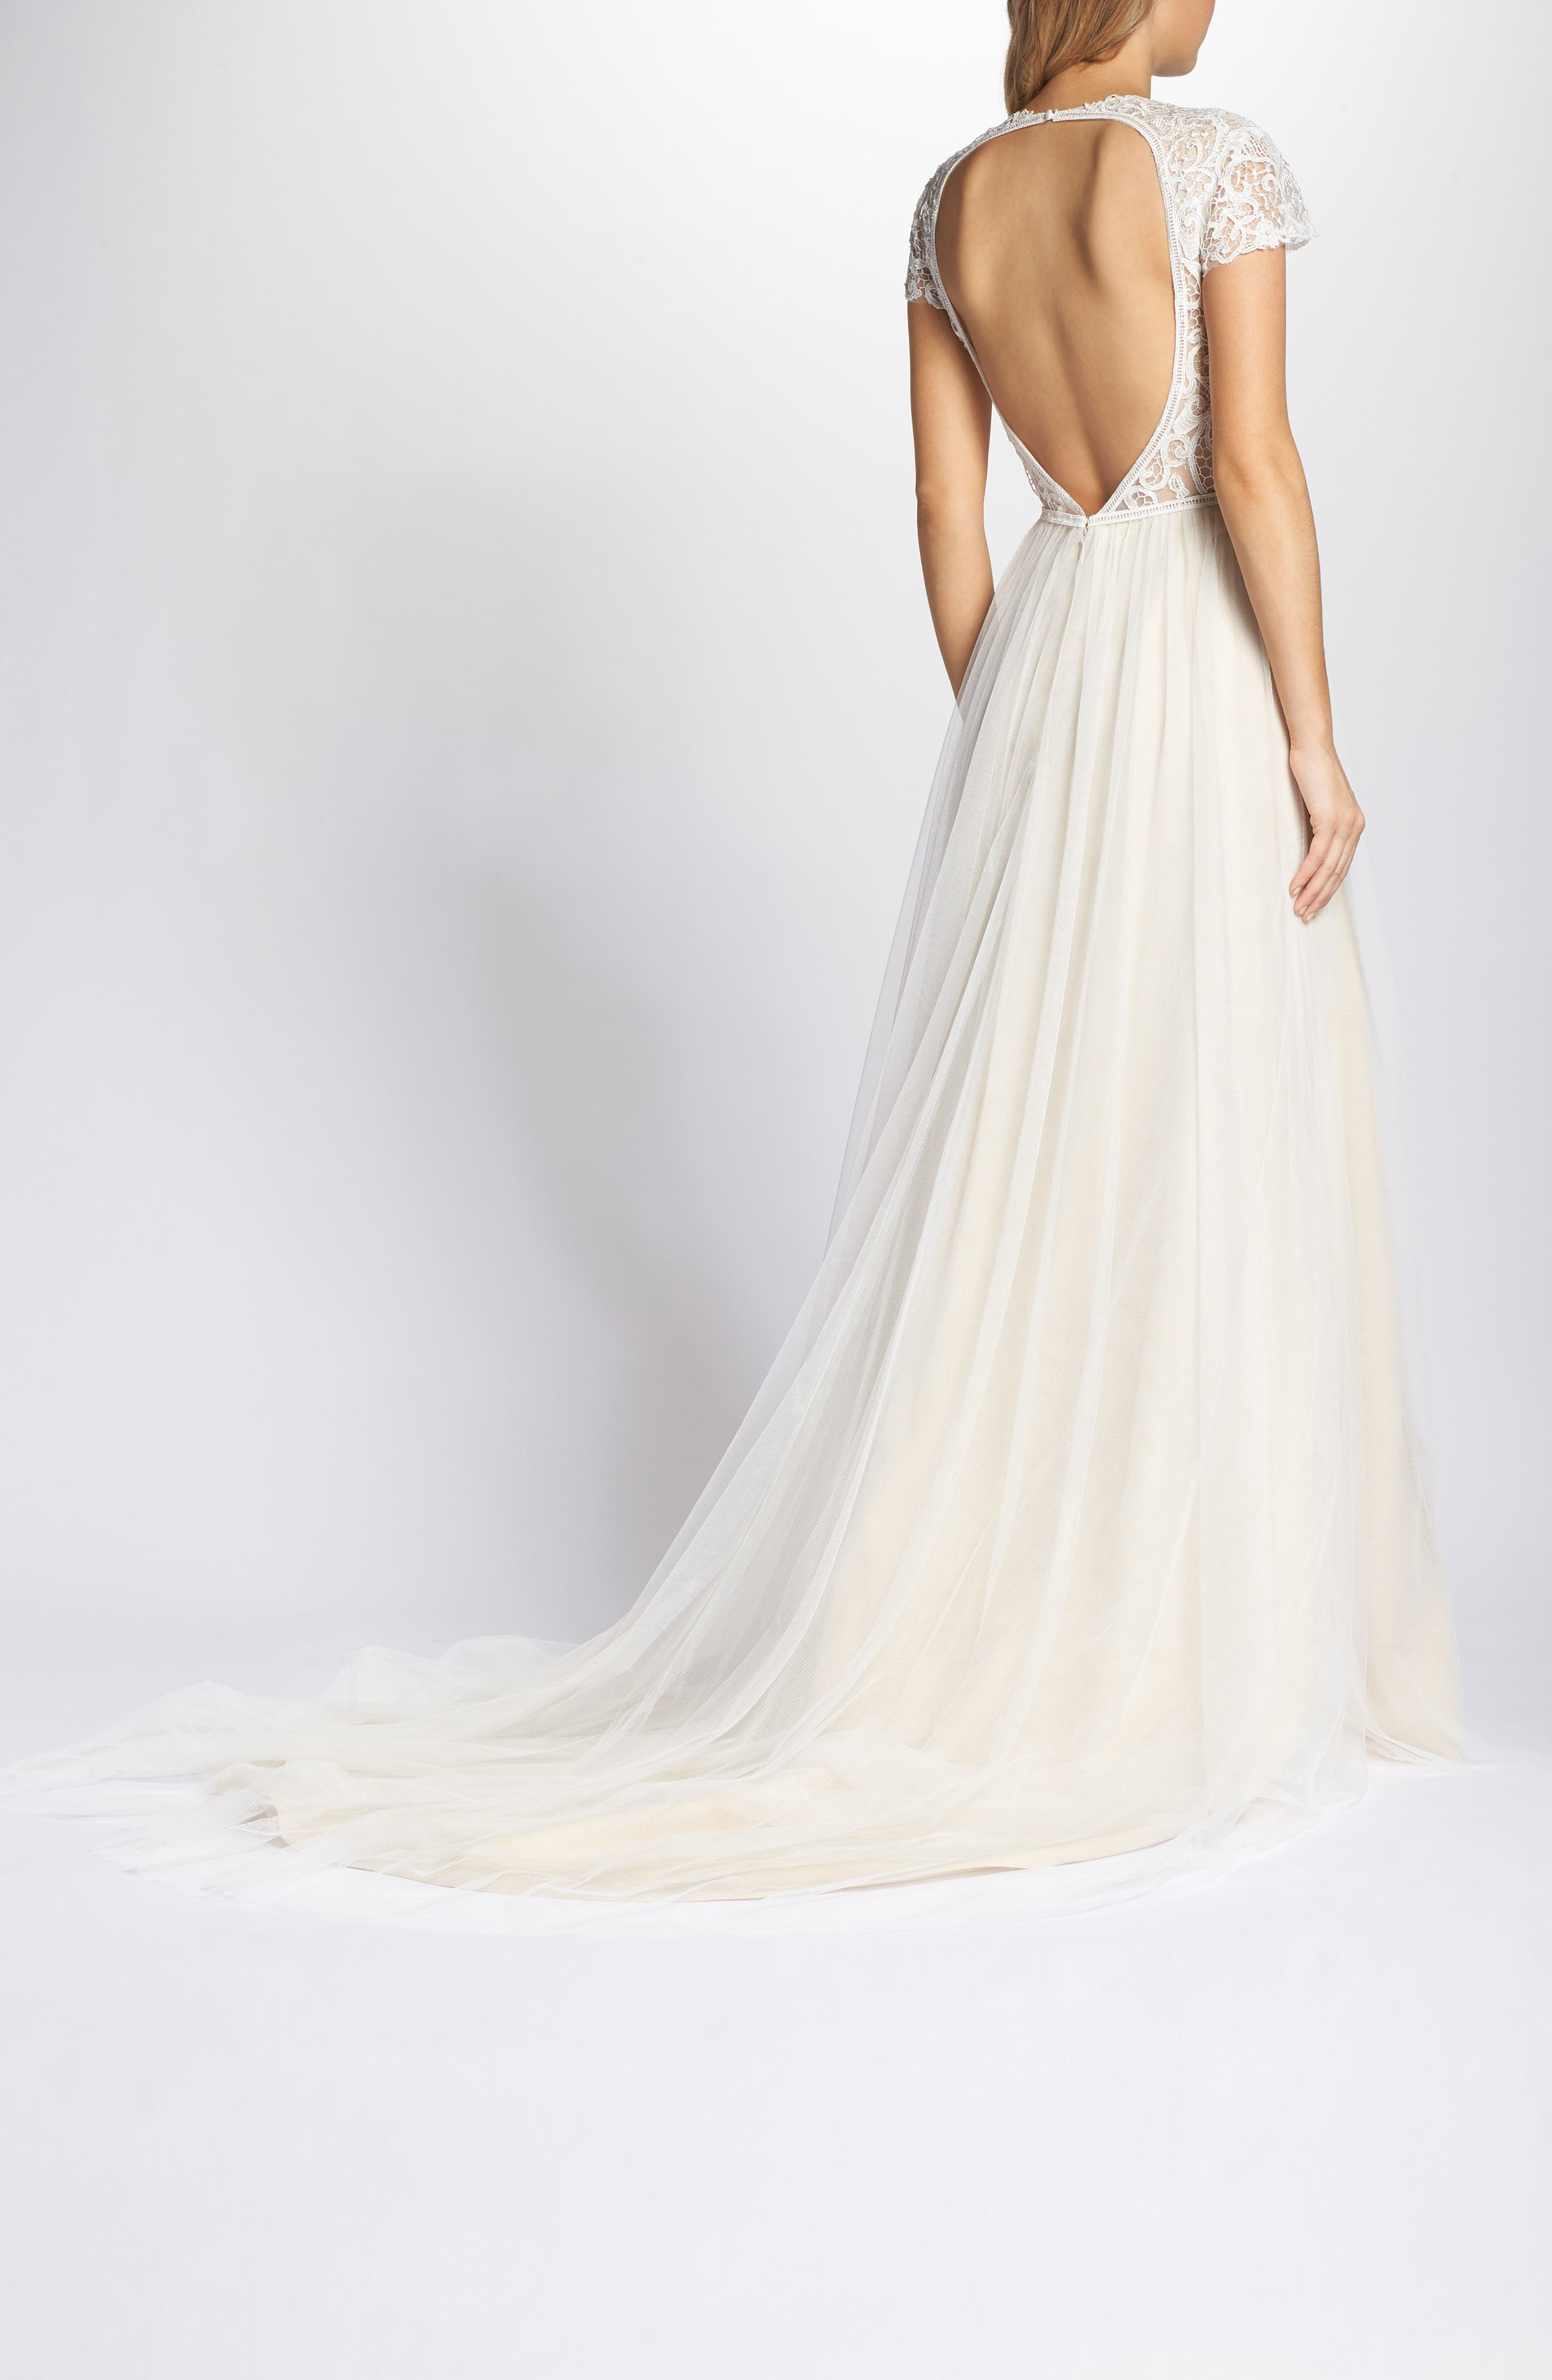 K'Mich Weddings - wedding planning - affordable wedding dresses - Ti Adora by Allison Webb & Tulle A-Line Lace Gown - Nordstrom